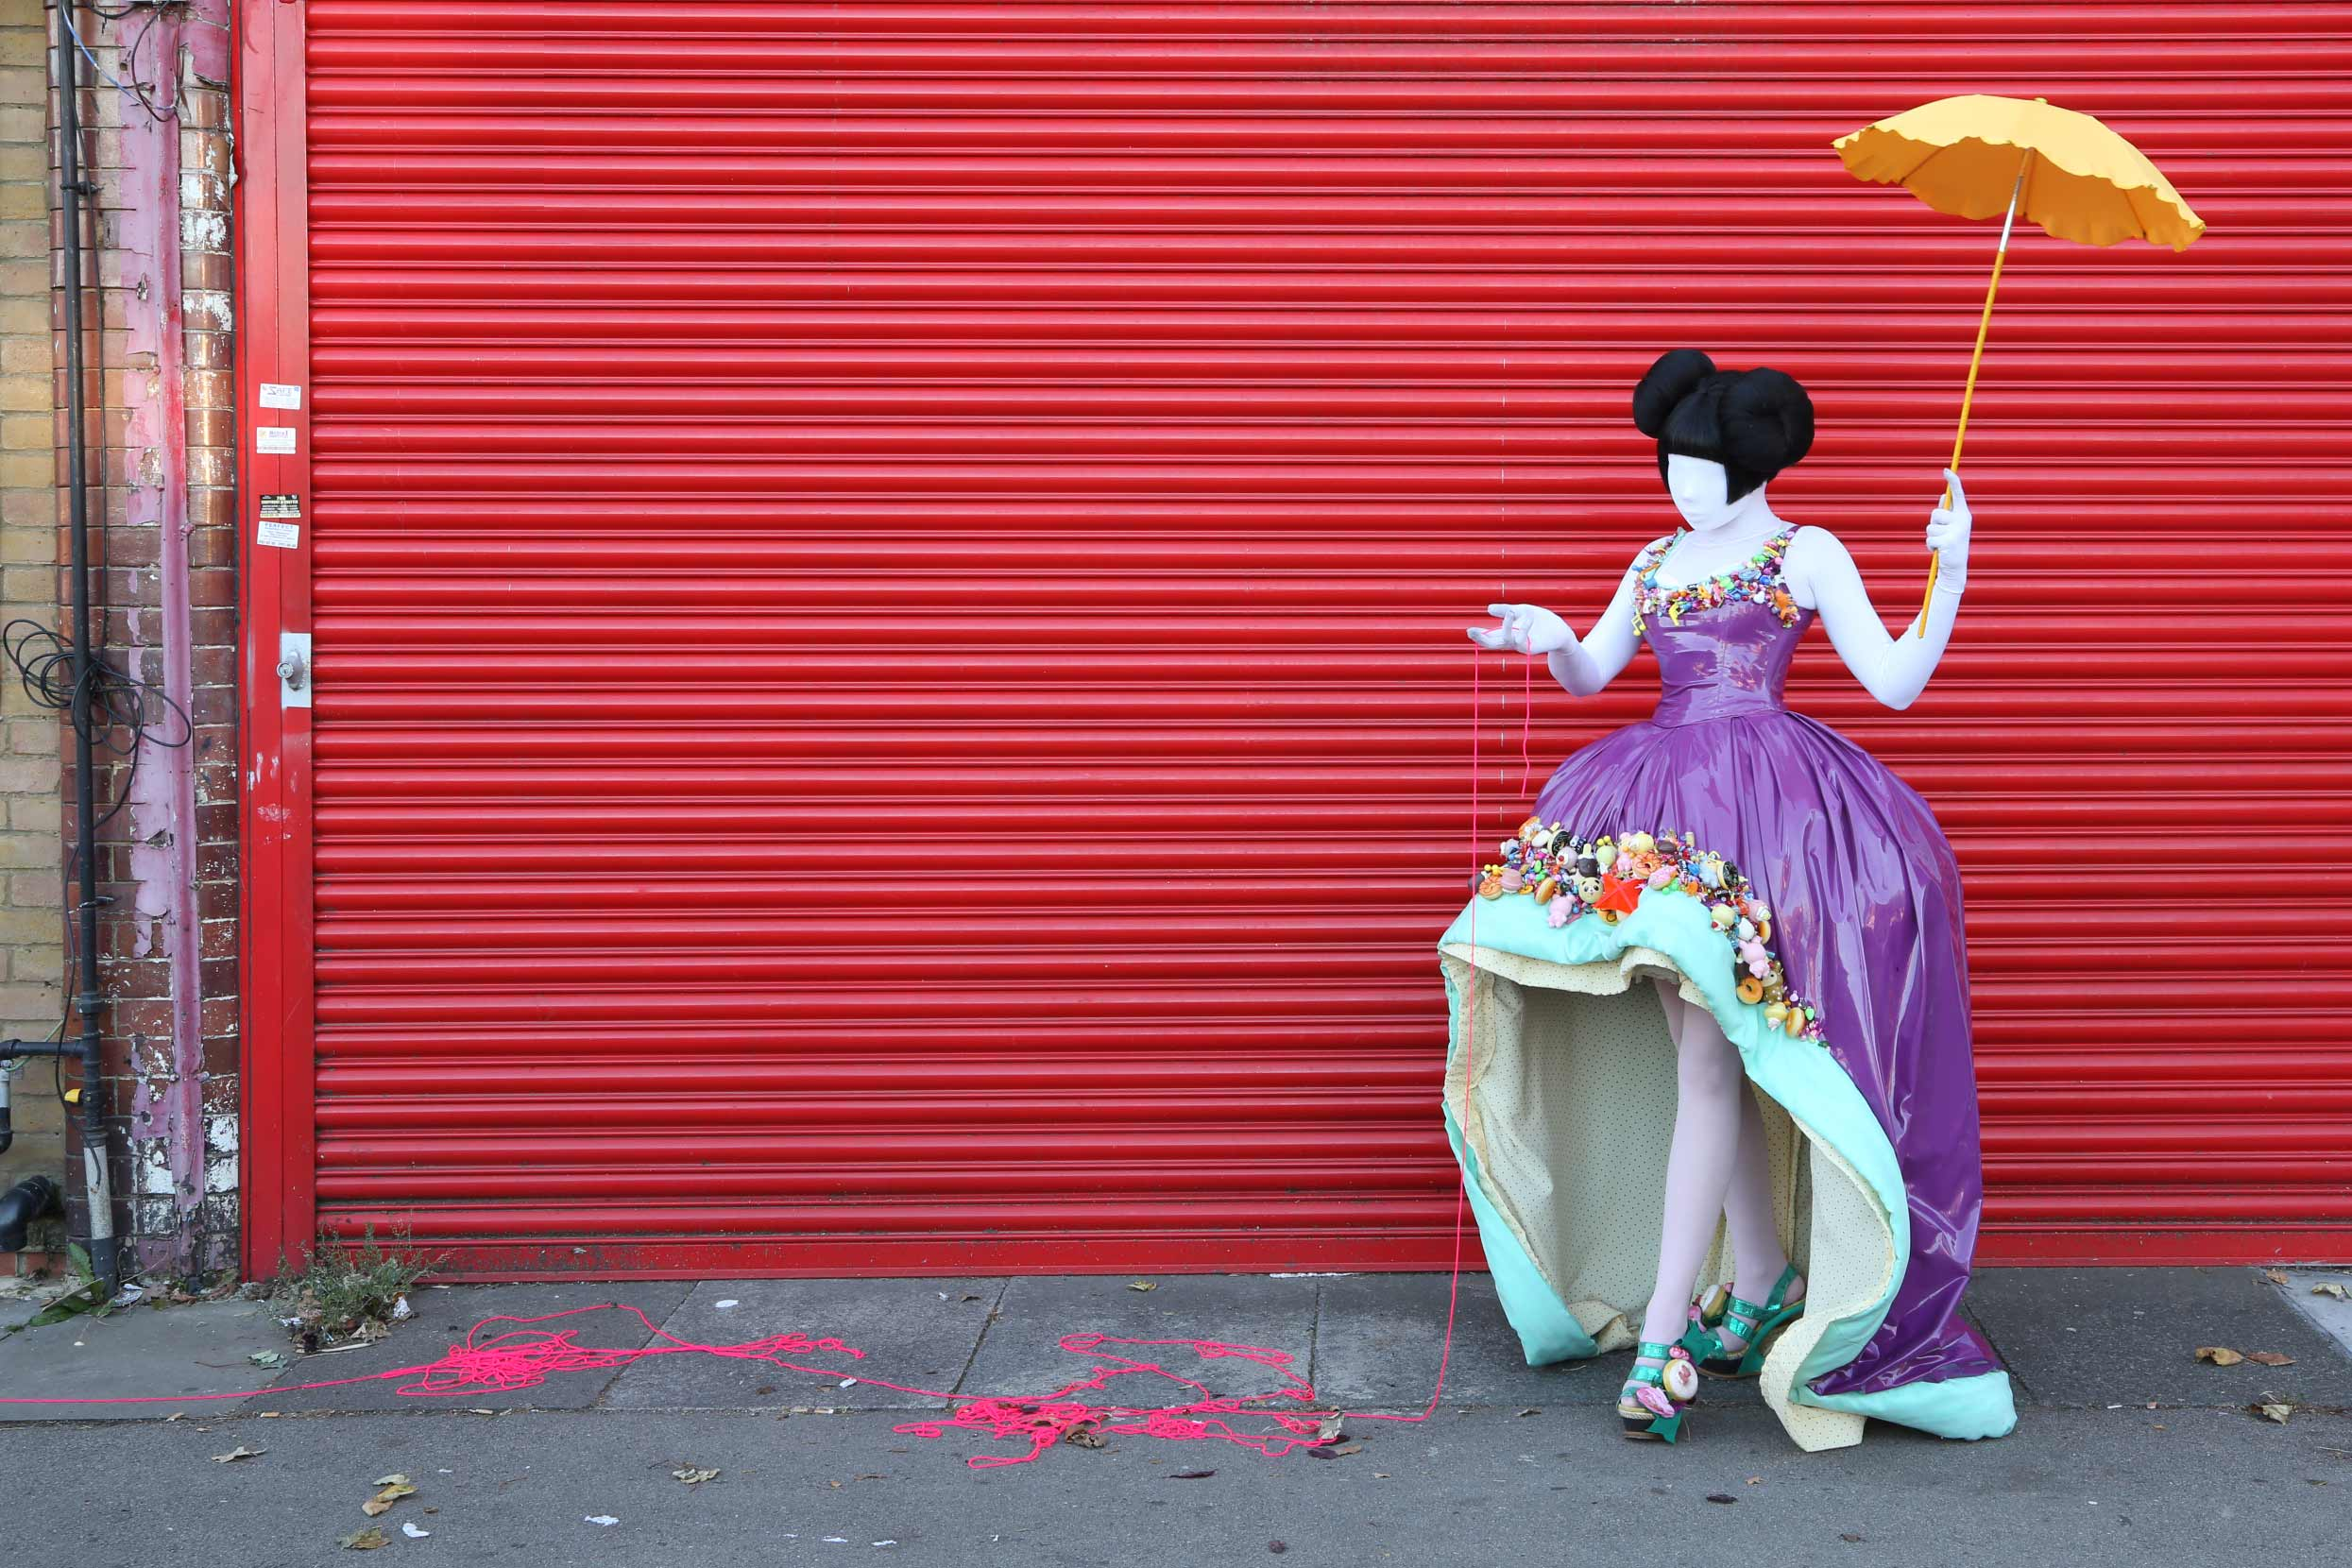 A doll-like woman dressed in an extravagant purple vinyl dress made by Milkshaken.net holds a yellow parasol and follows a neon pink thread trail found on the street.